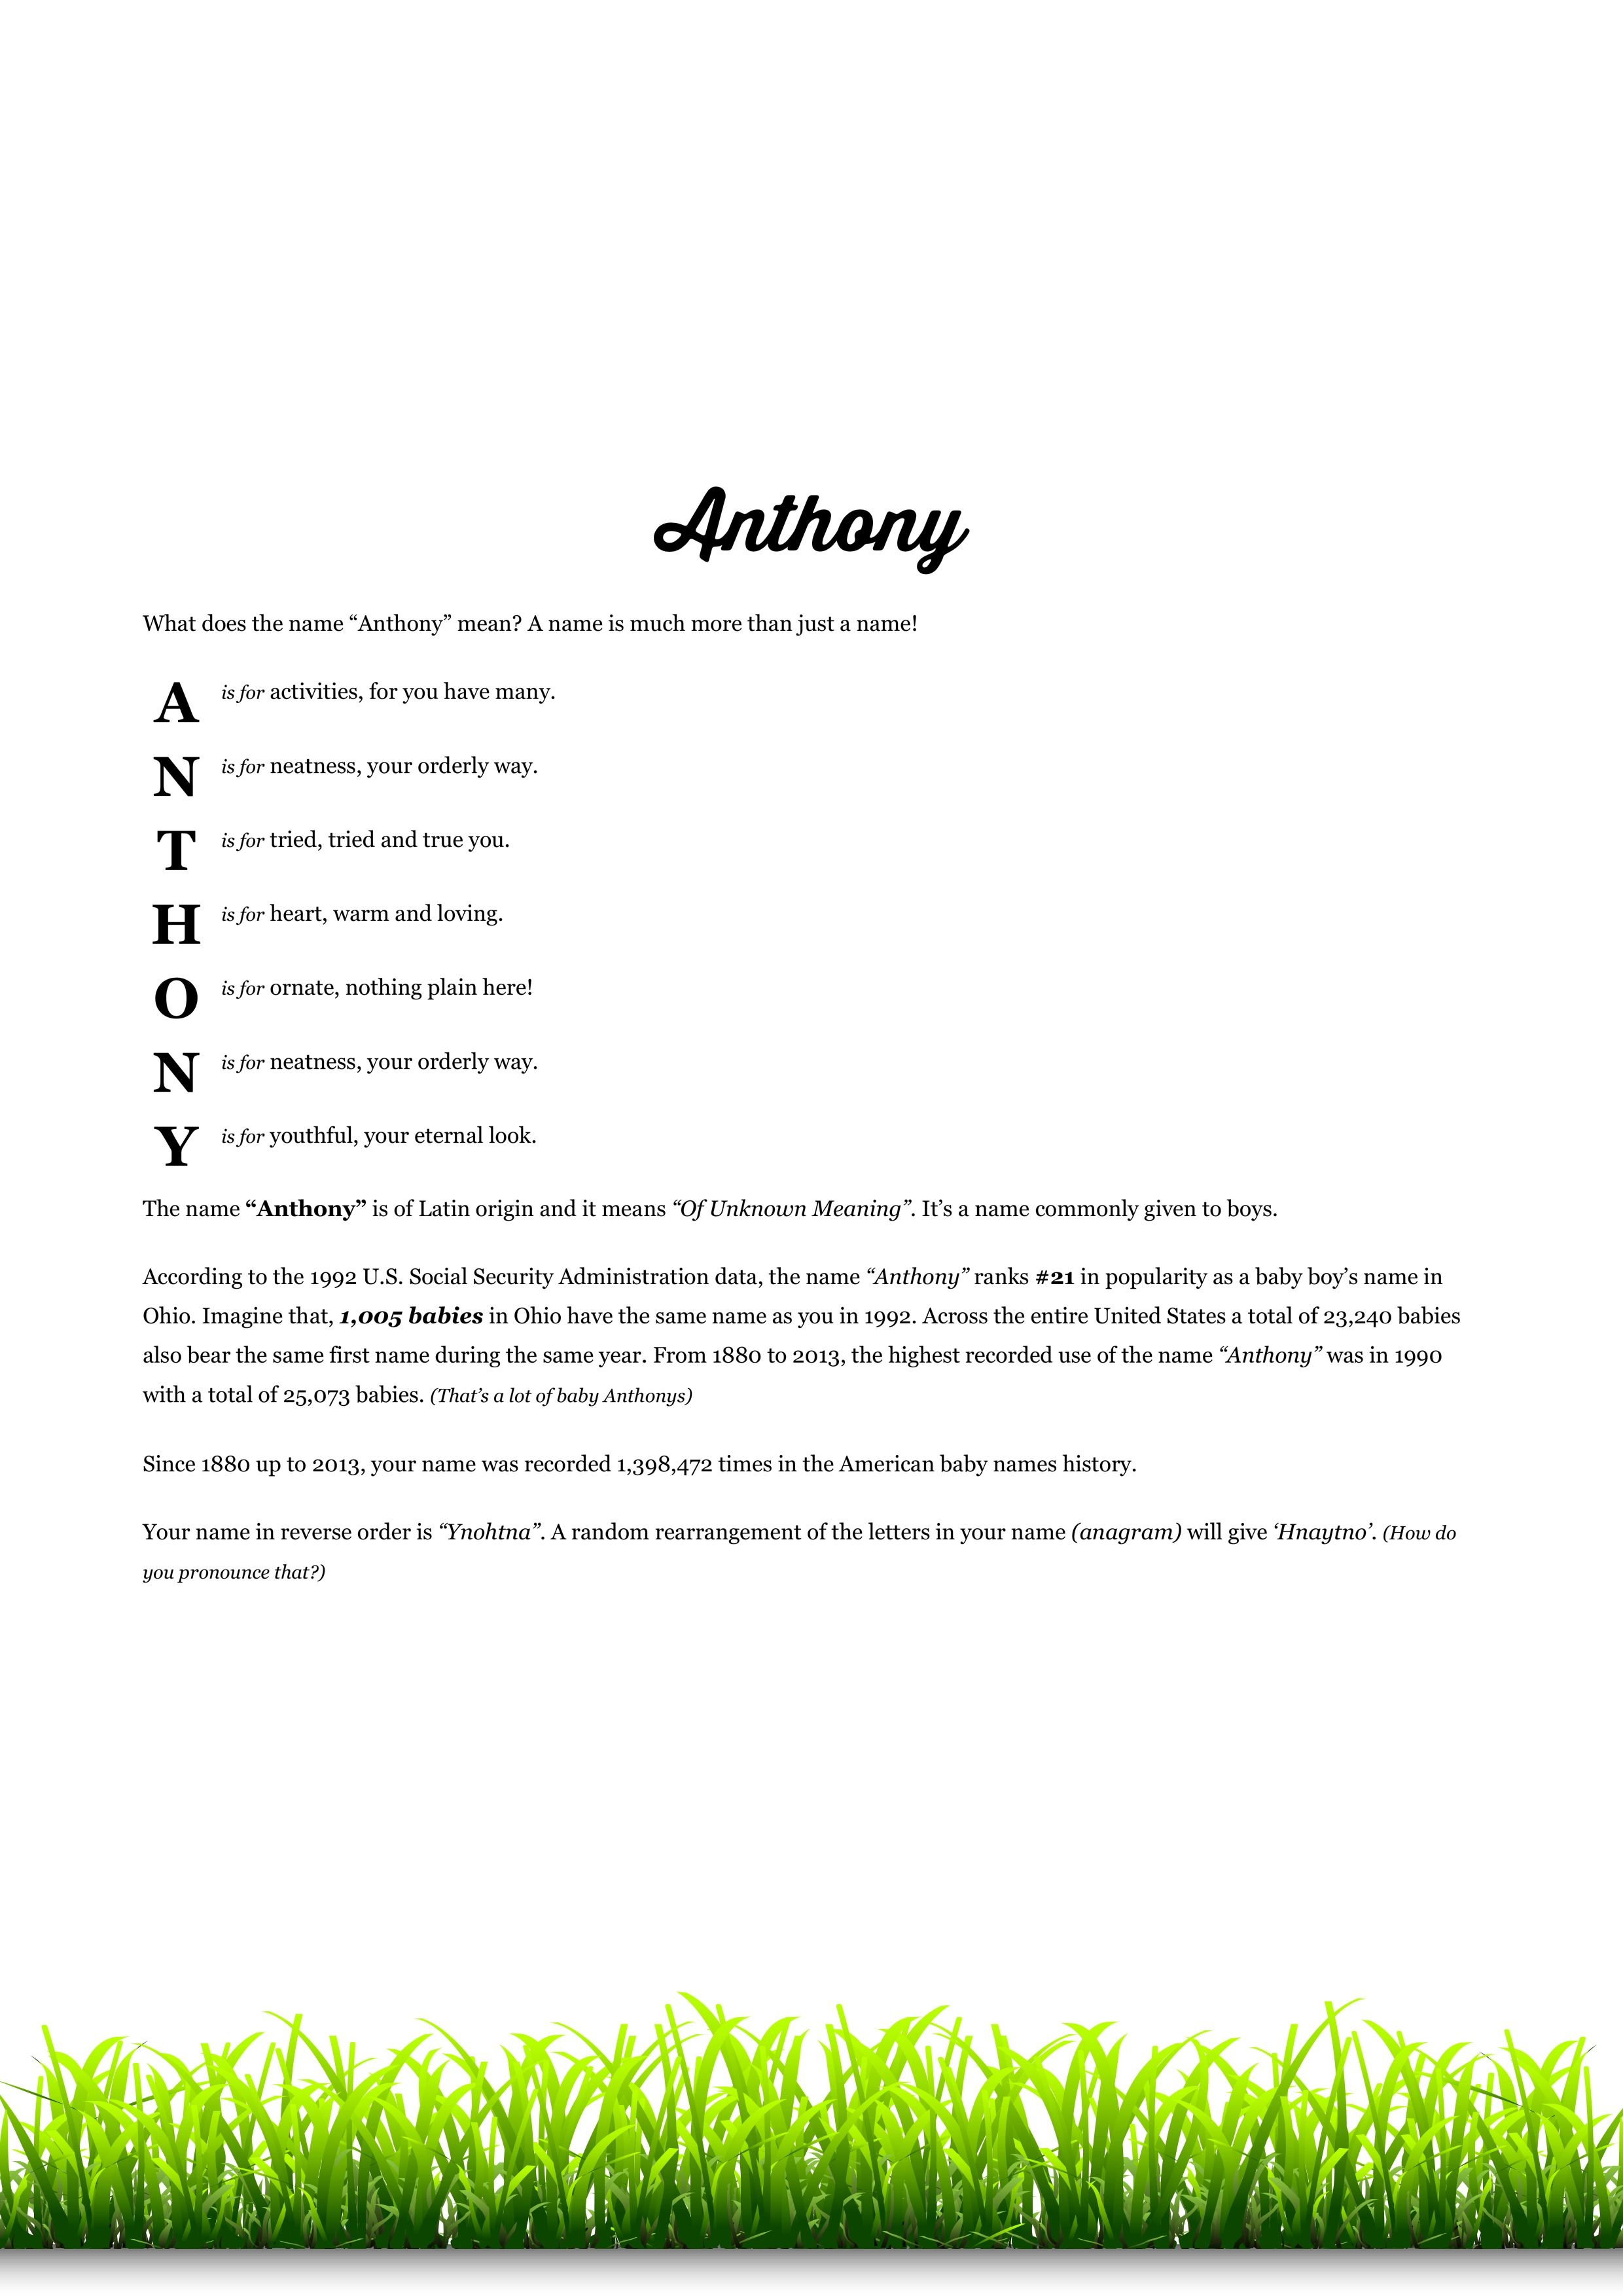 The #namemeaning of #Anthony using Plain Grass from the